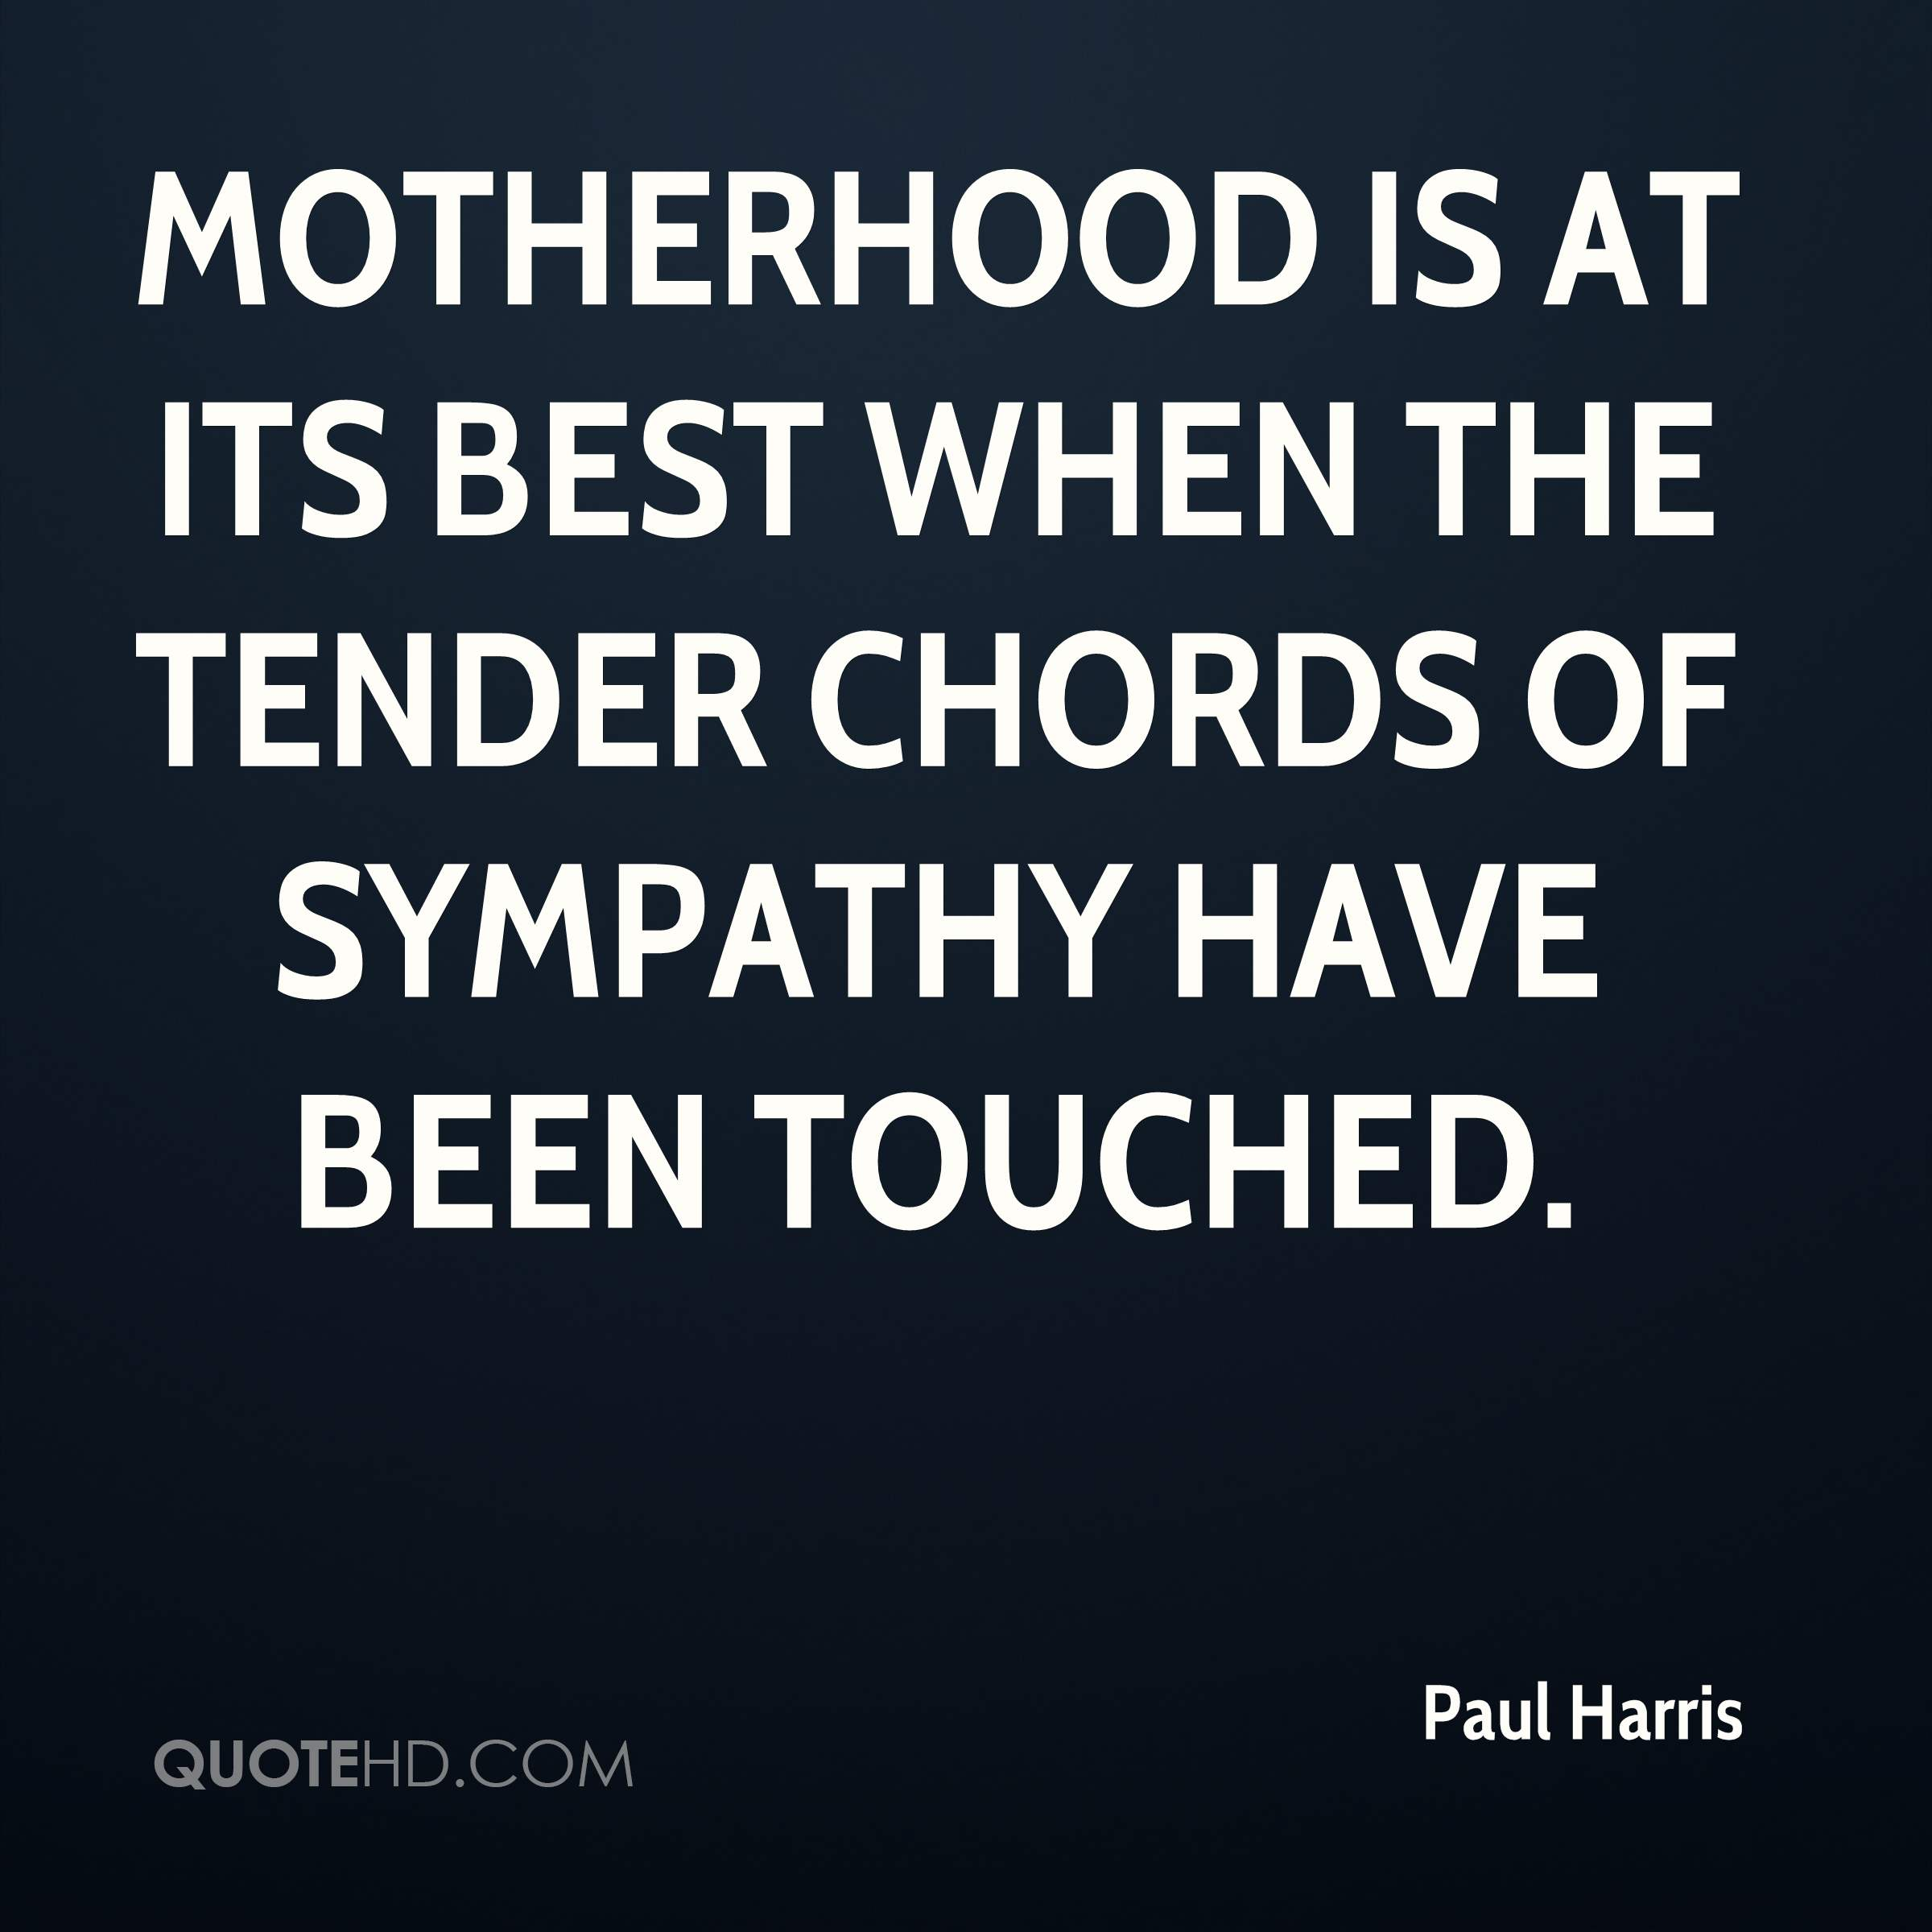 Motherhood is at its best when the tender chords of sympathy have been touched.